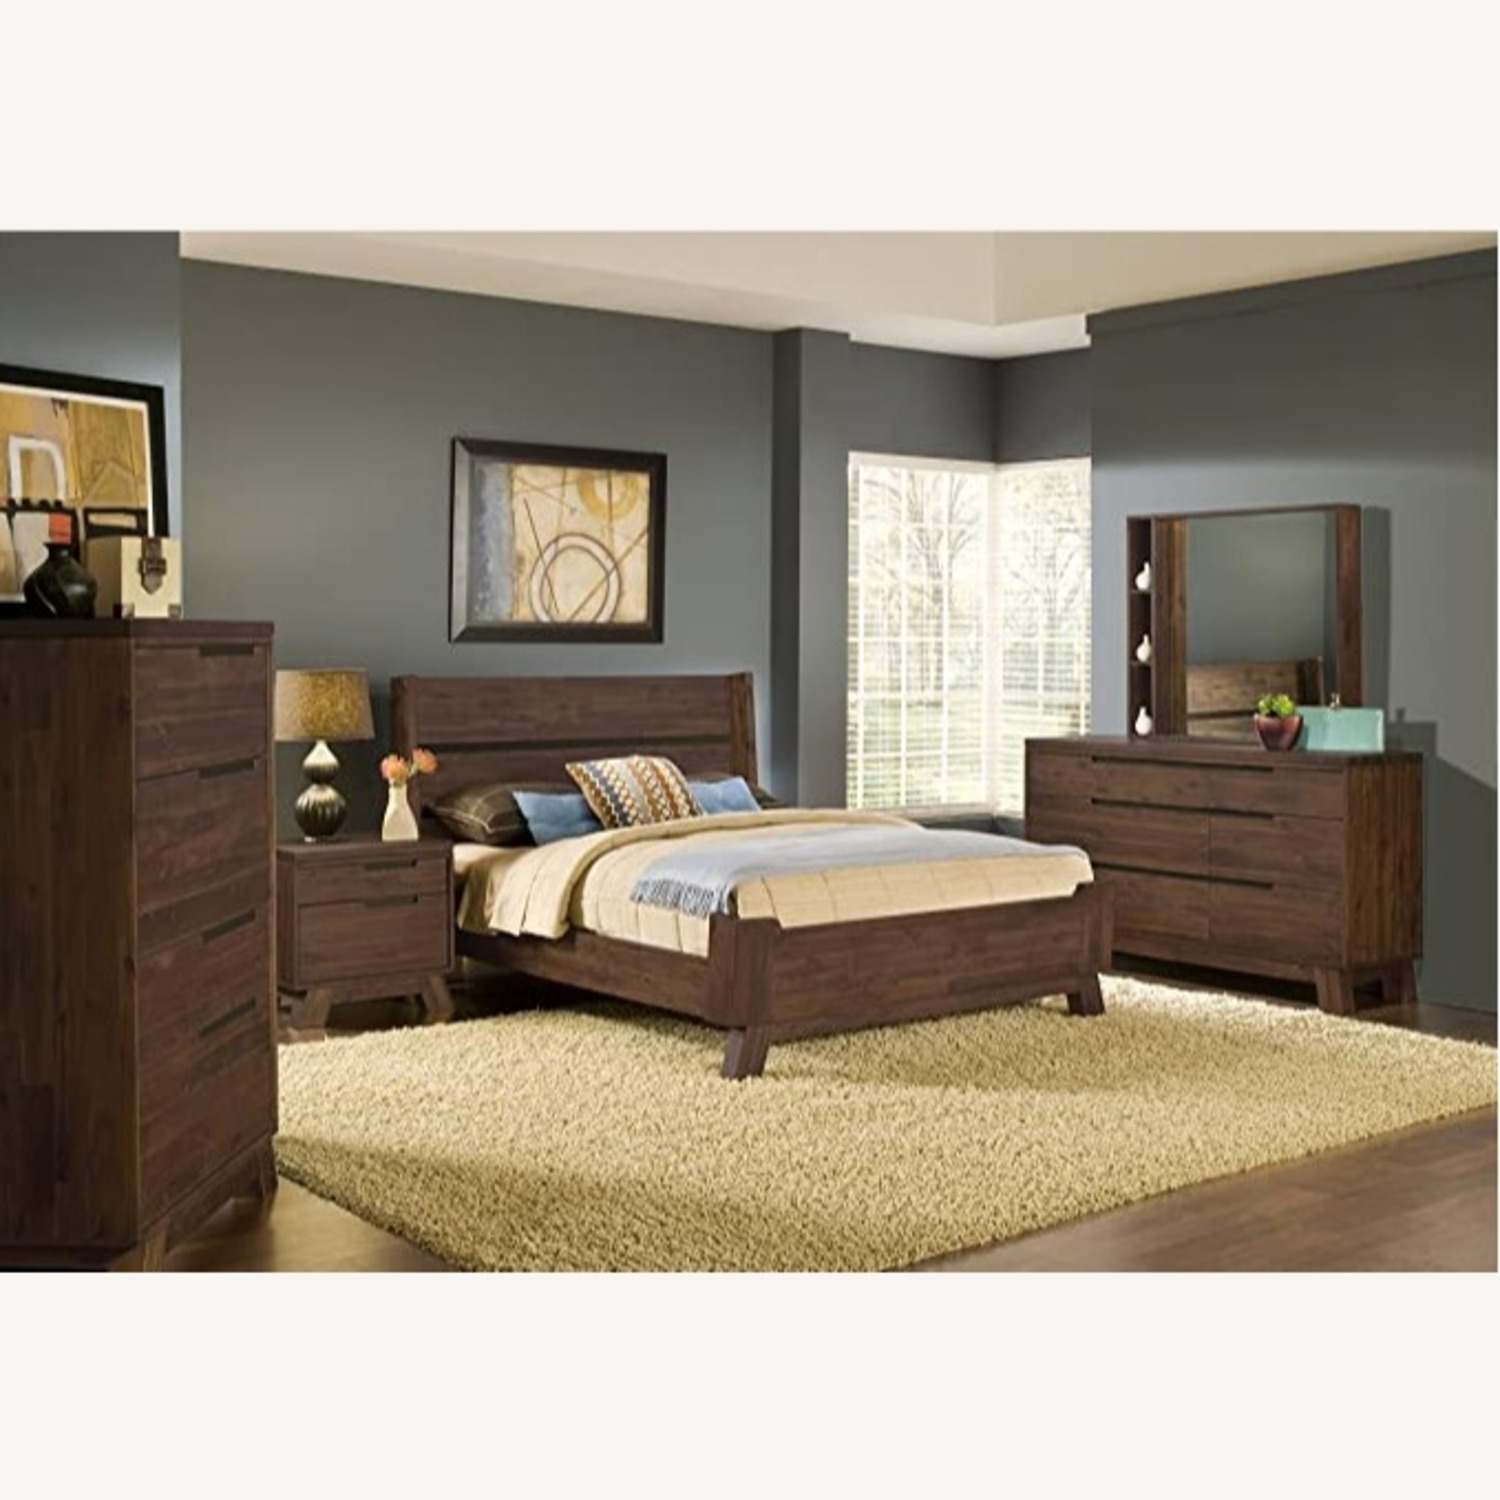 Modus Furniture Solid Wood Queen Bed - image-1